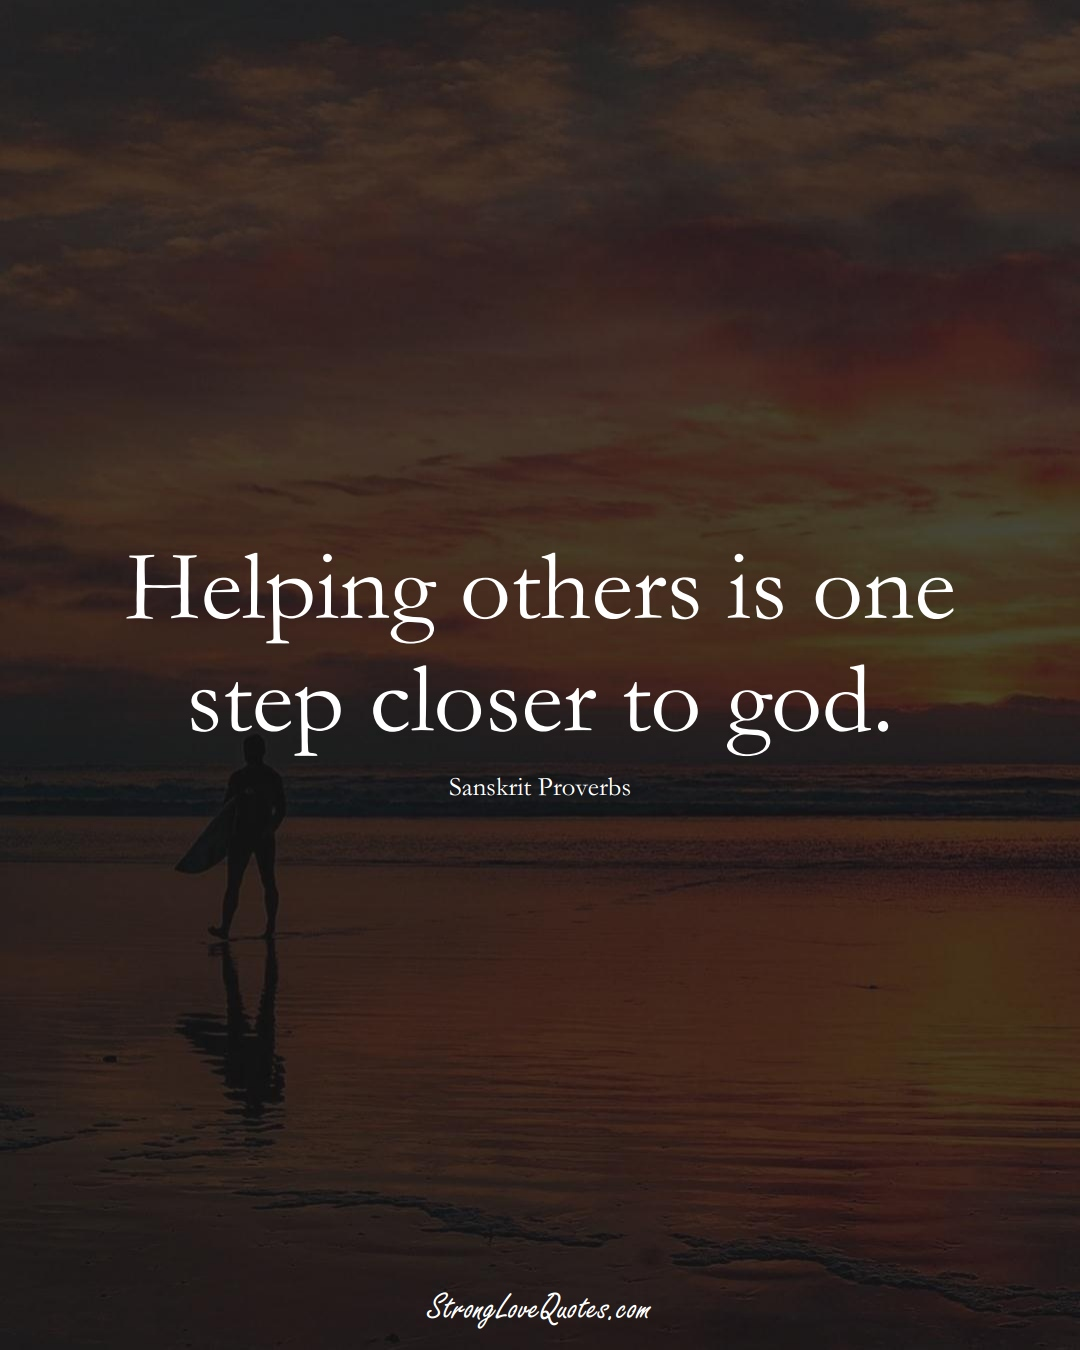 Helping others is one step closer to god. (Sanskrit Sayings);  #aVarietyofCulturesSayings